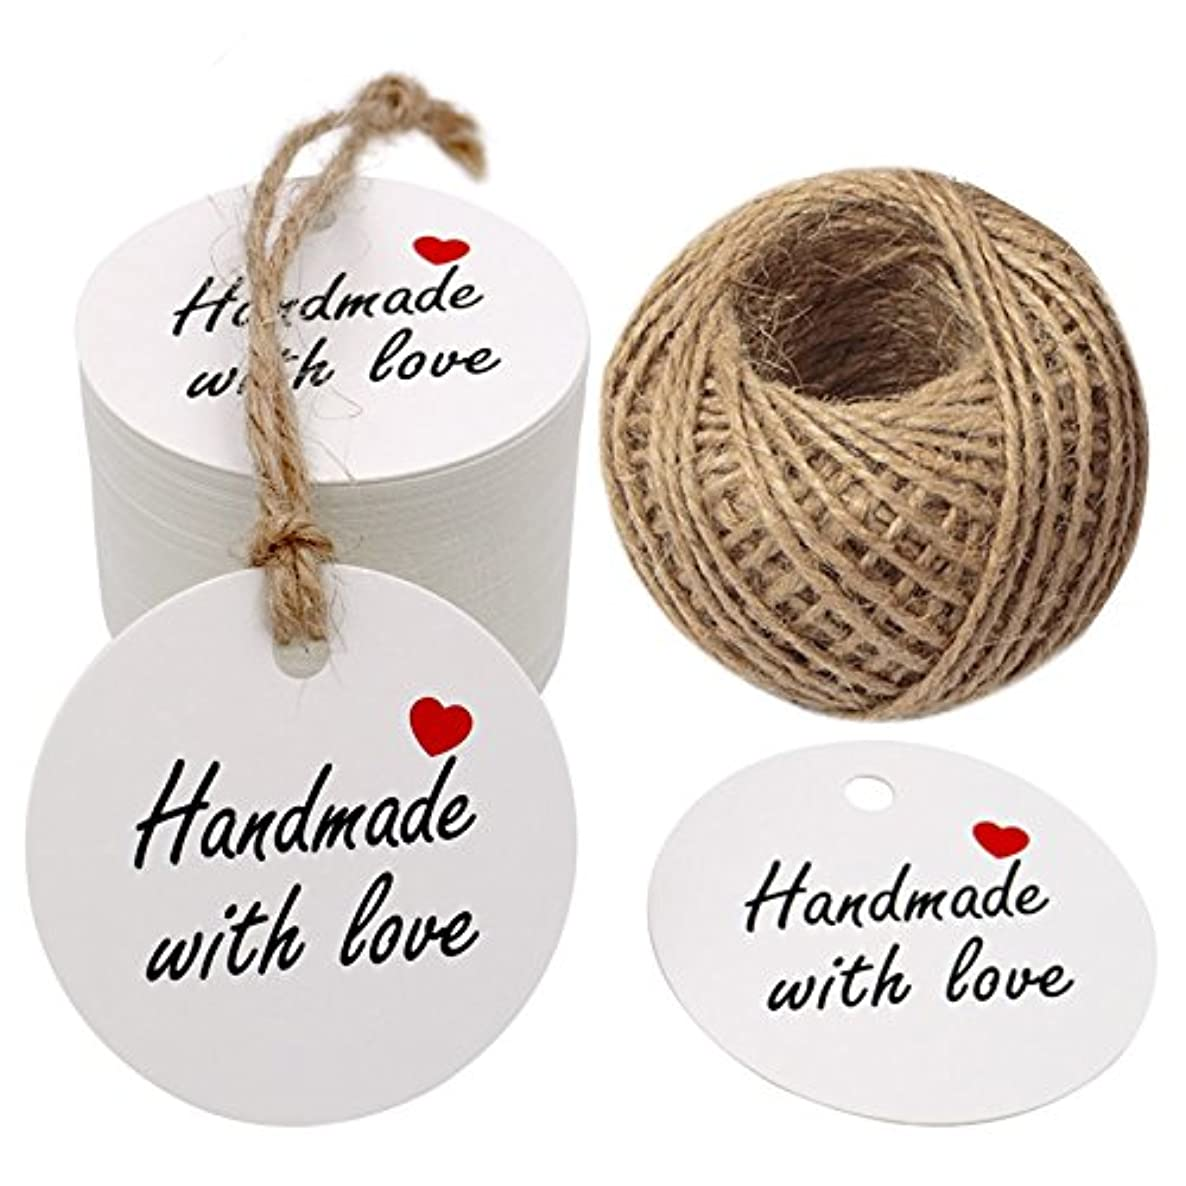 Handmade with Love Gift Tags, 2'' Round Tags 100PCS Brown Kraft Hang Tags with 100 Feet Natural Jute Twine Perfect for DIY&Craft, Wedding Party Favor and Birthday Party